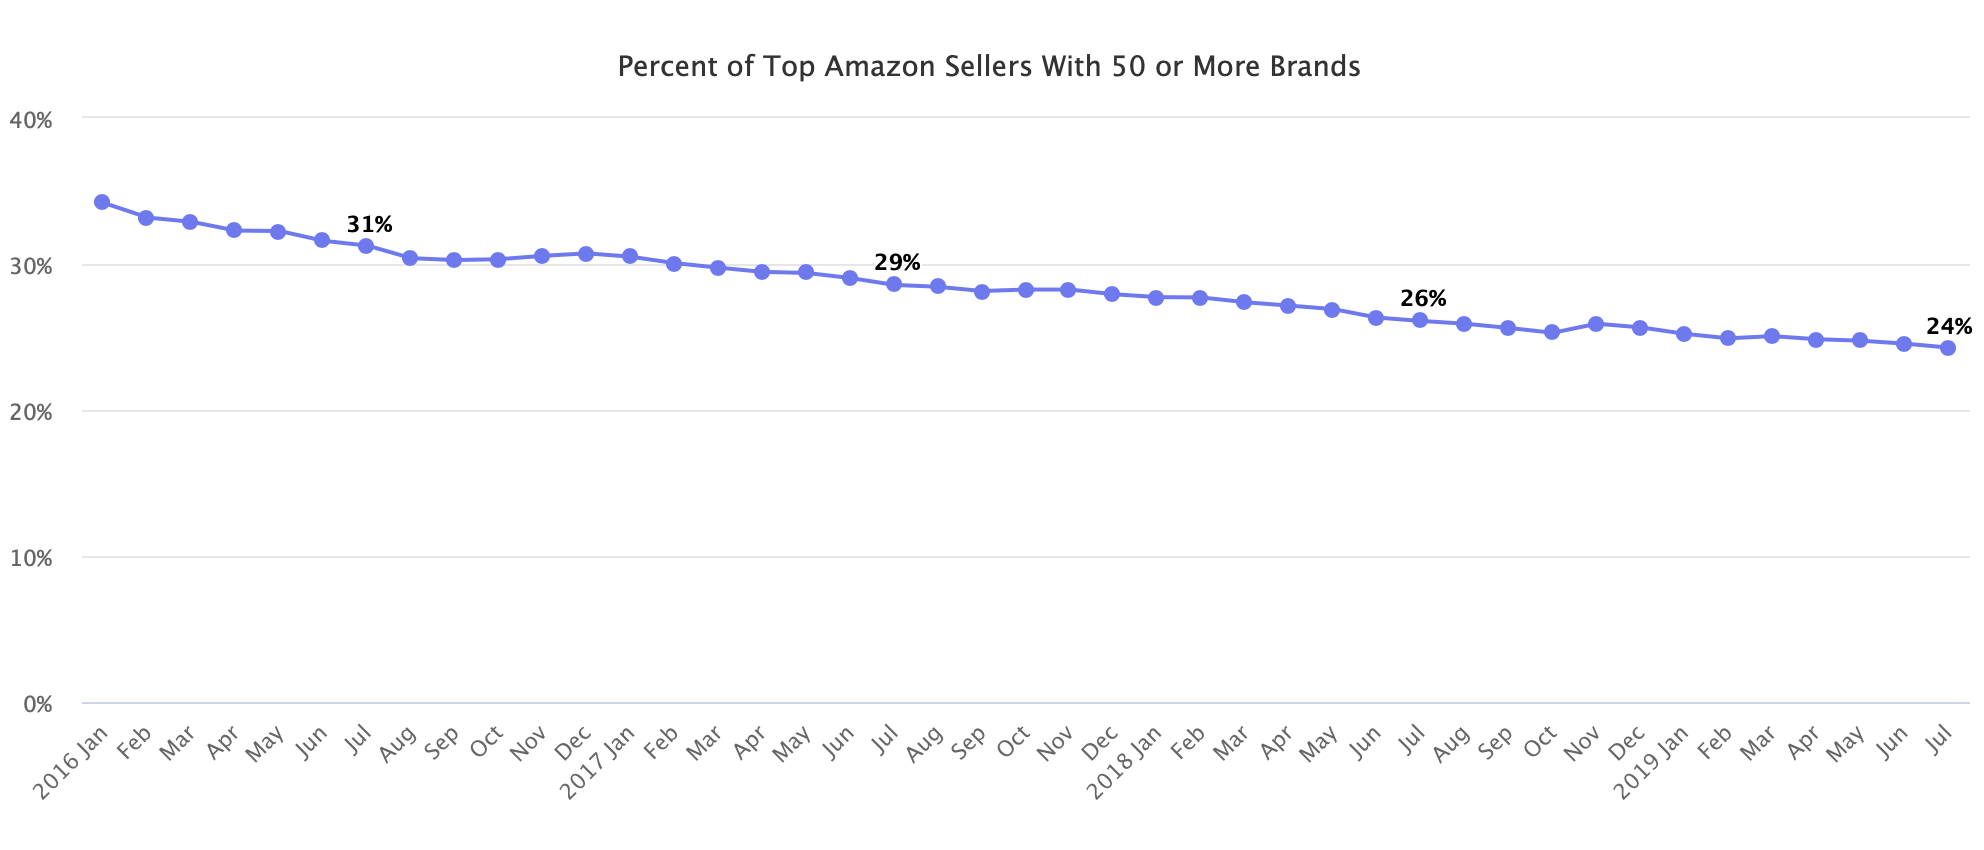 Percent of Top Amazon Sellers With 50 or More Brands